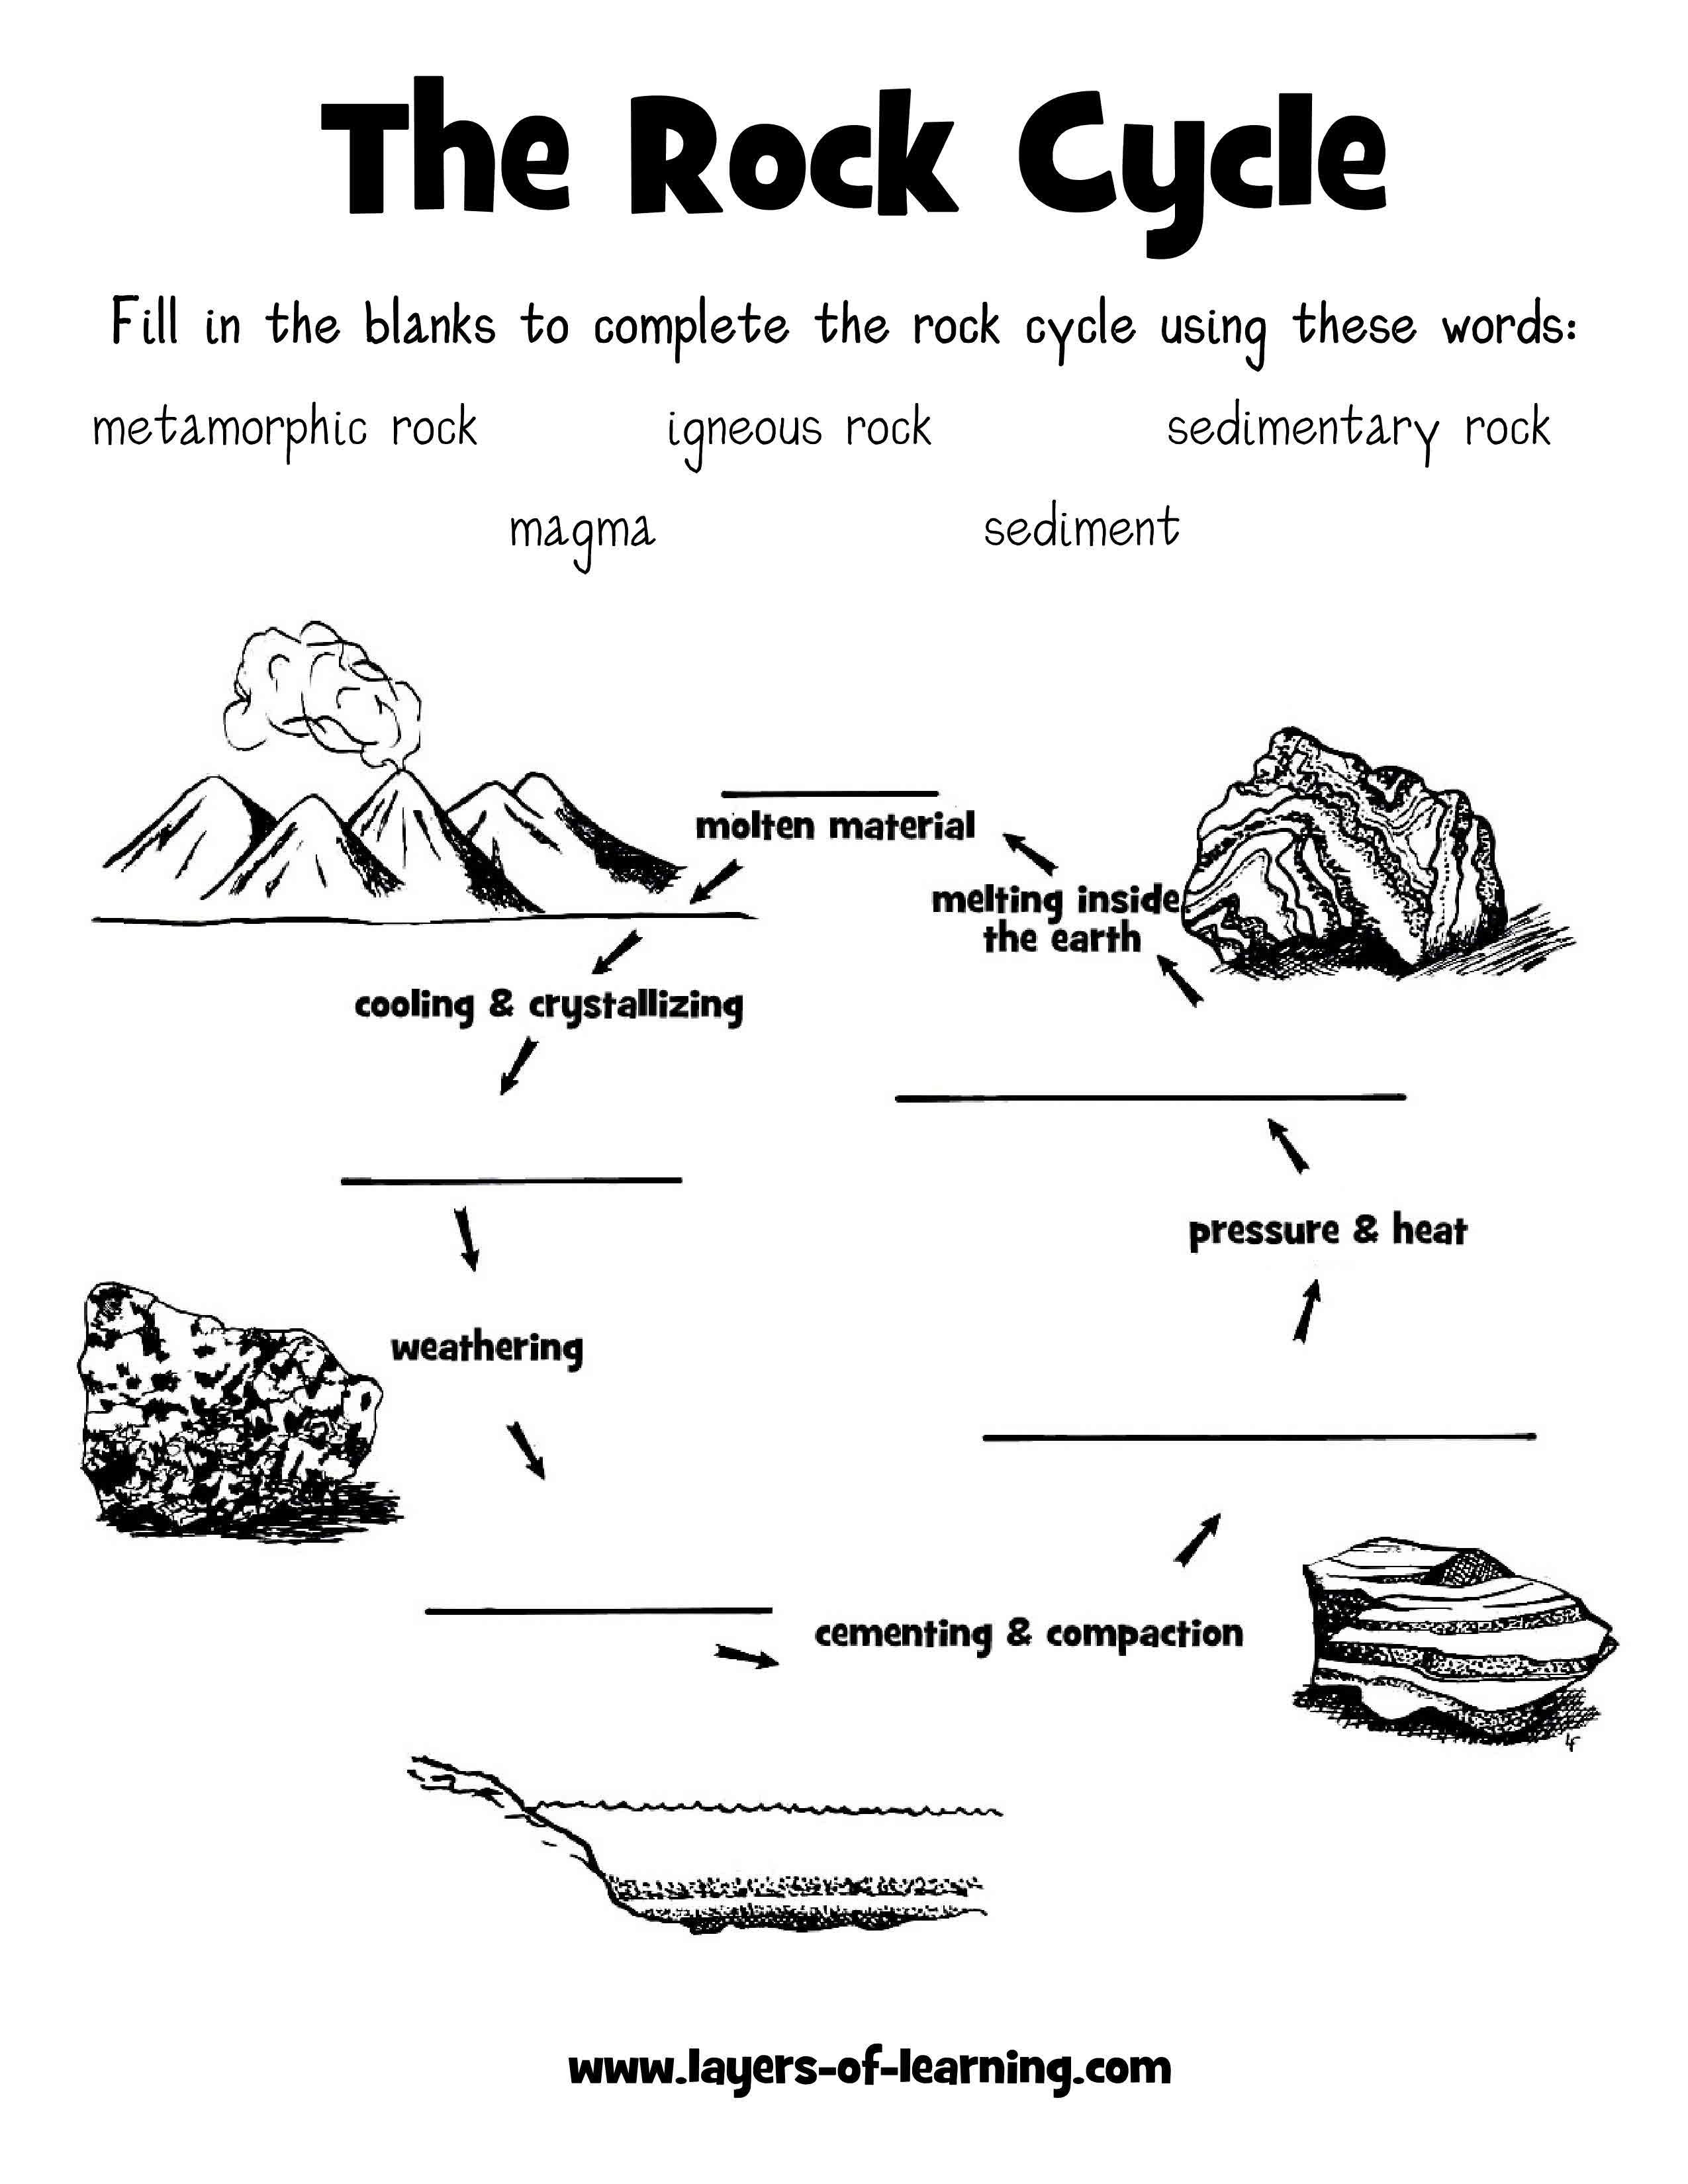 Worksheets The Rock Cycle Worksheets rock cycle worksheet layers of learning science pinterest learning